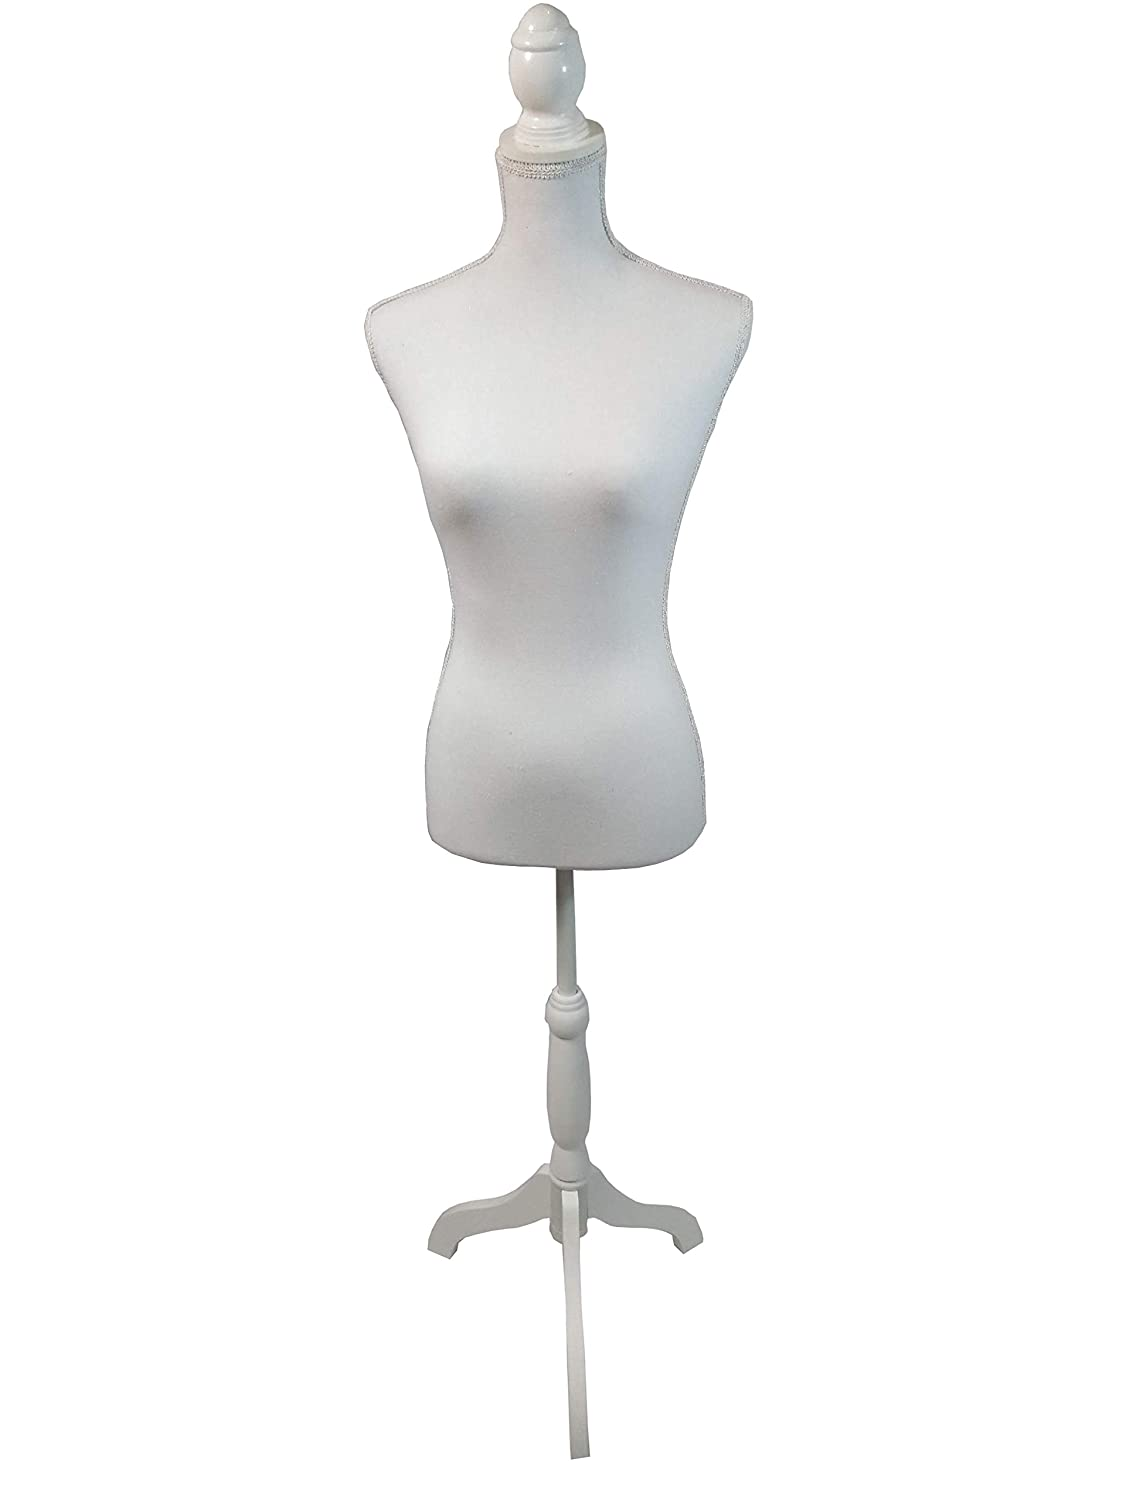 The Urban Port White Female Adjustable Mannequin Torso with Wooden Tripod Stand Benzara C208-123033